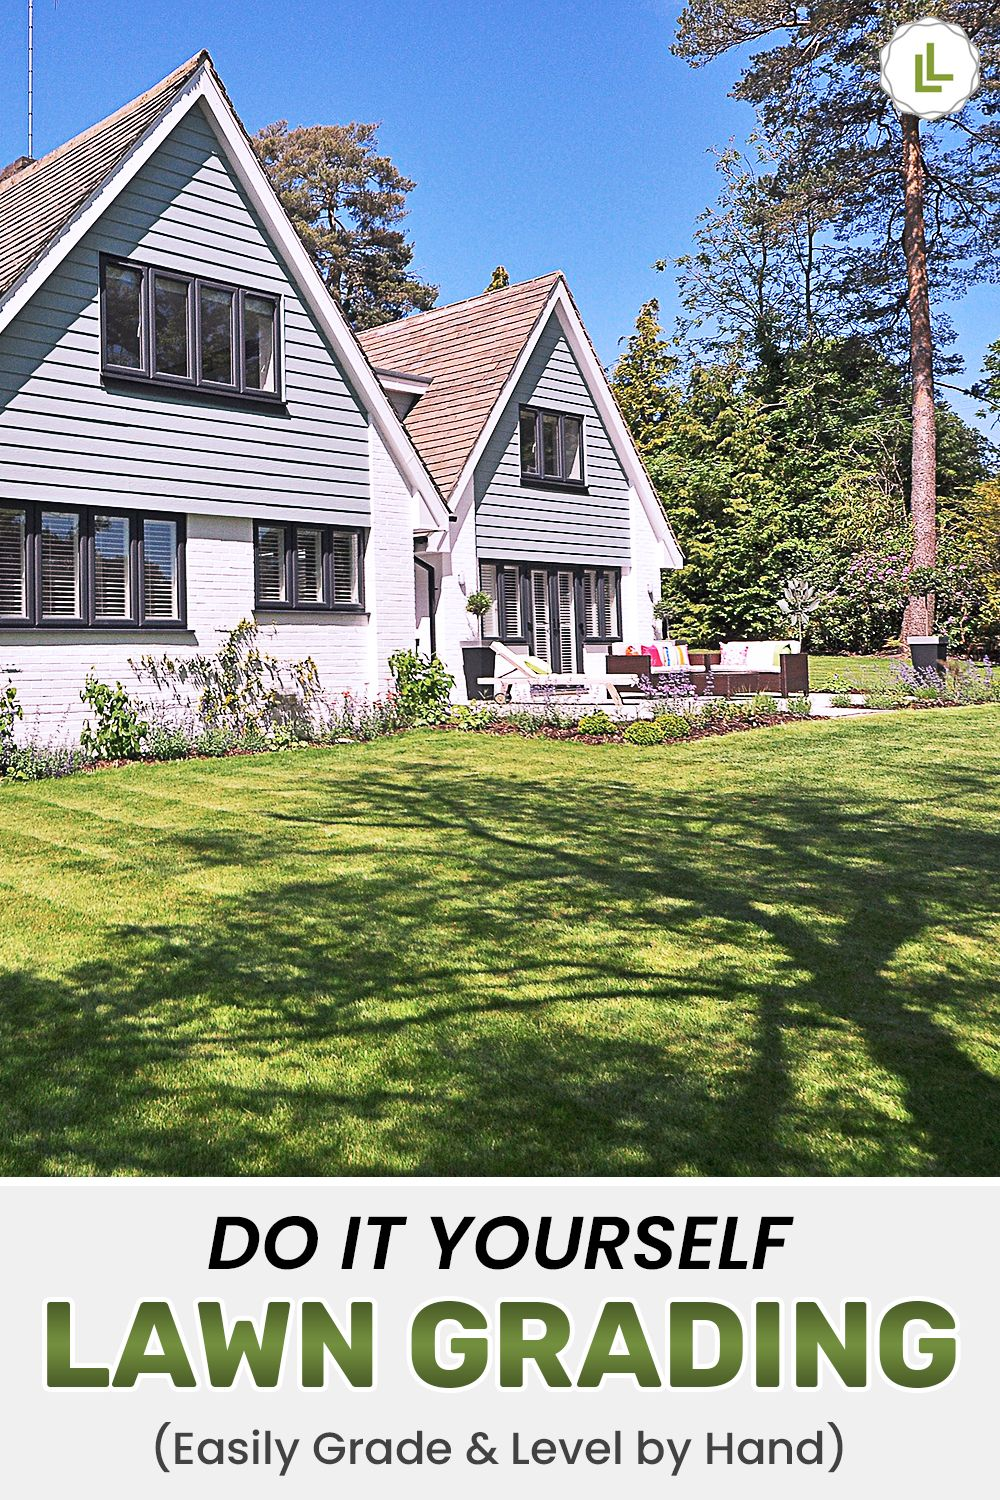 Do it yourself lawn grading how to level a yard by hand